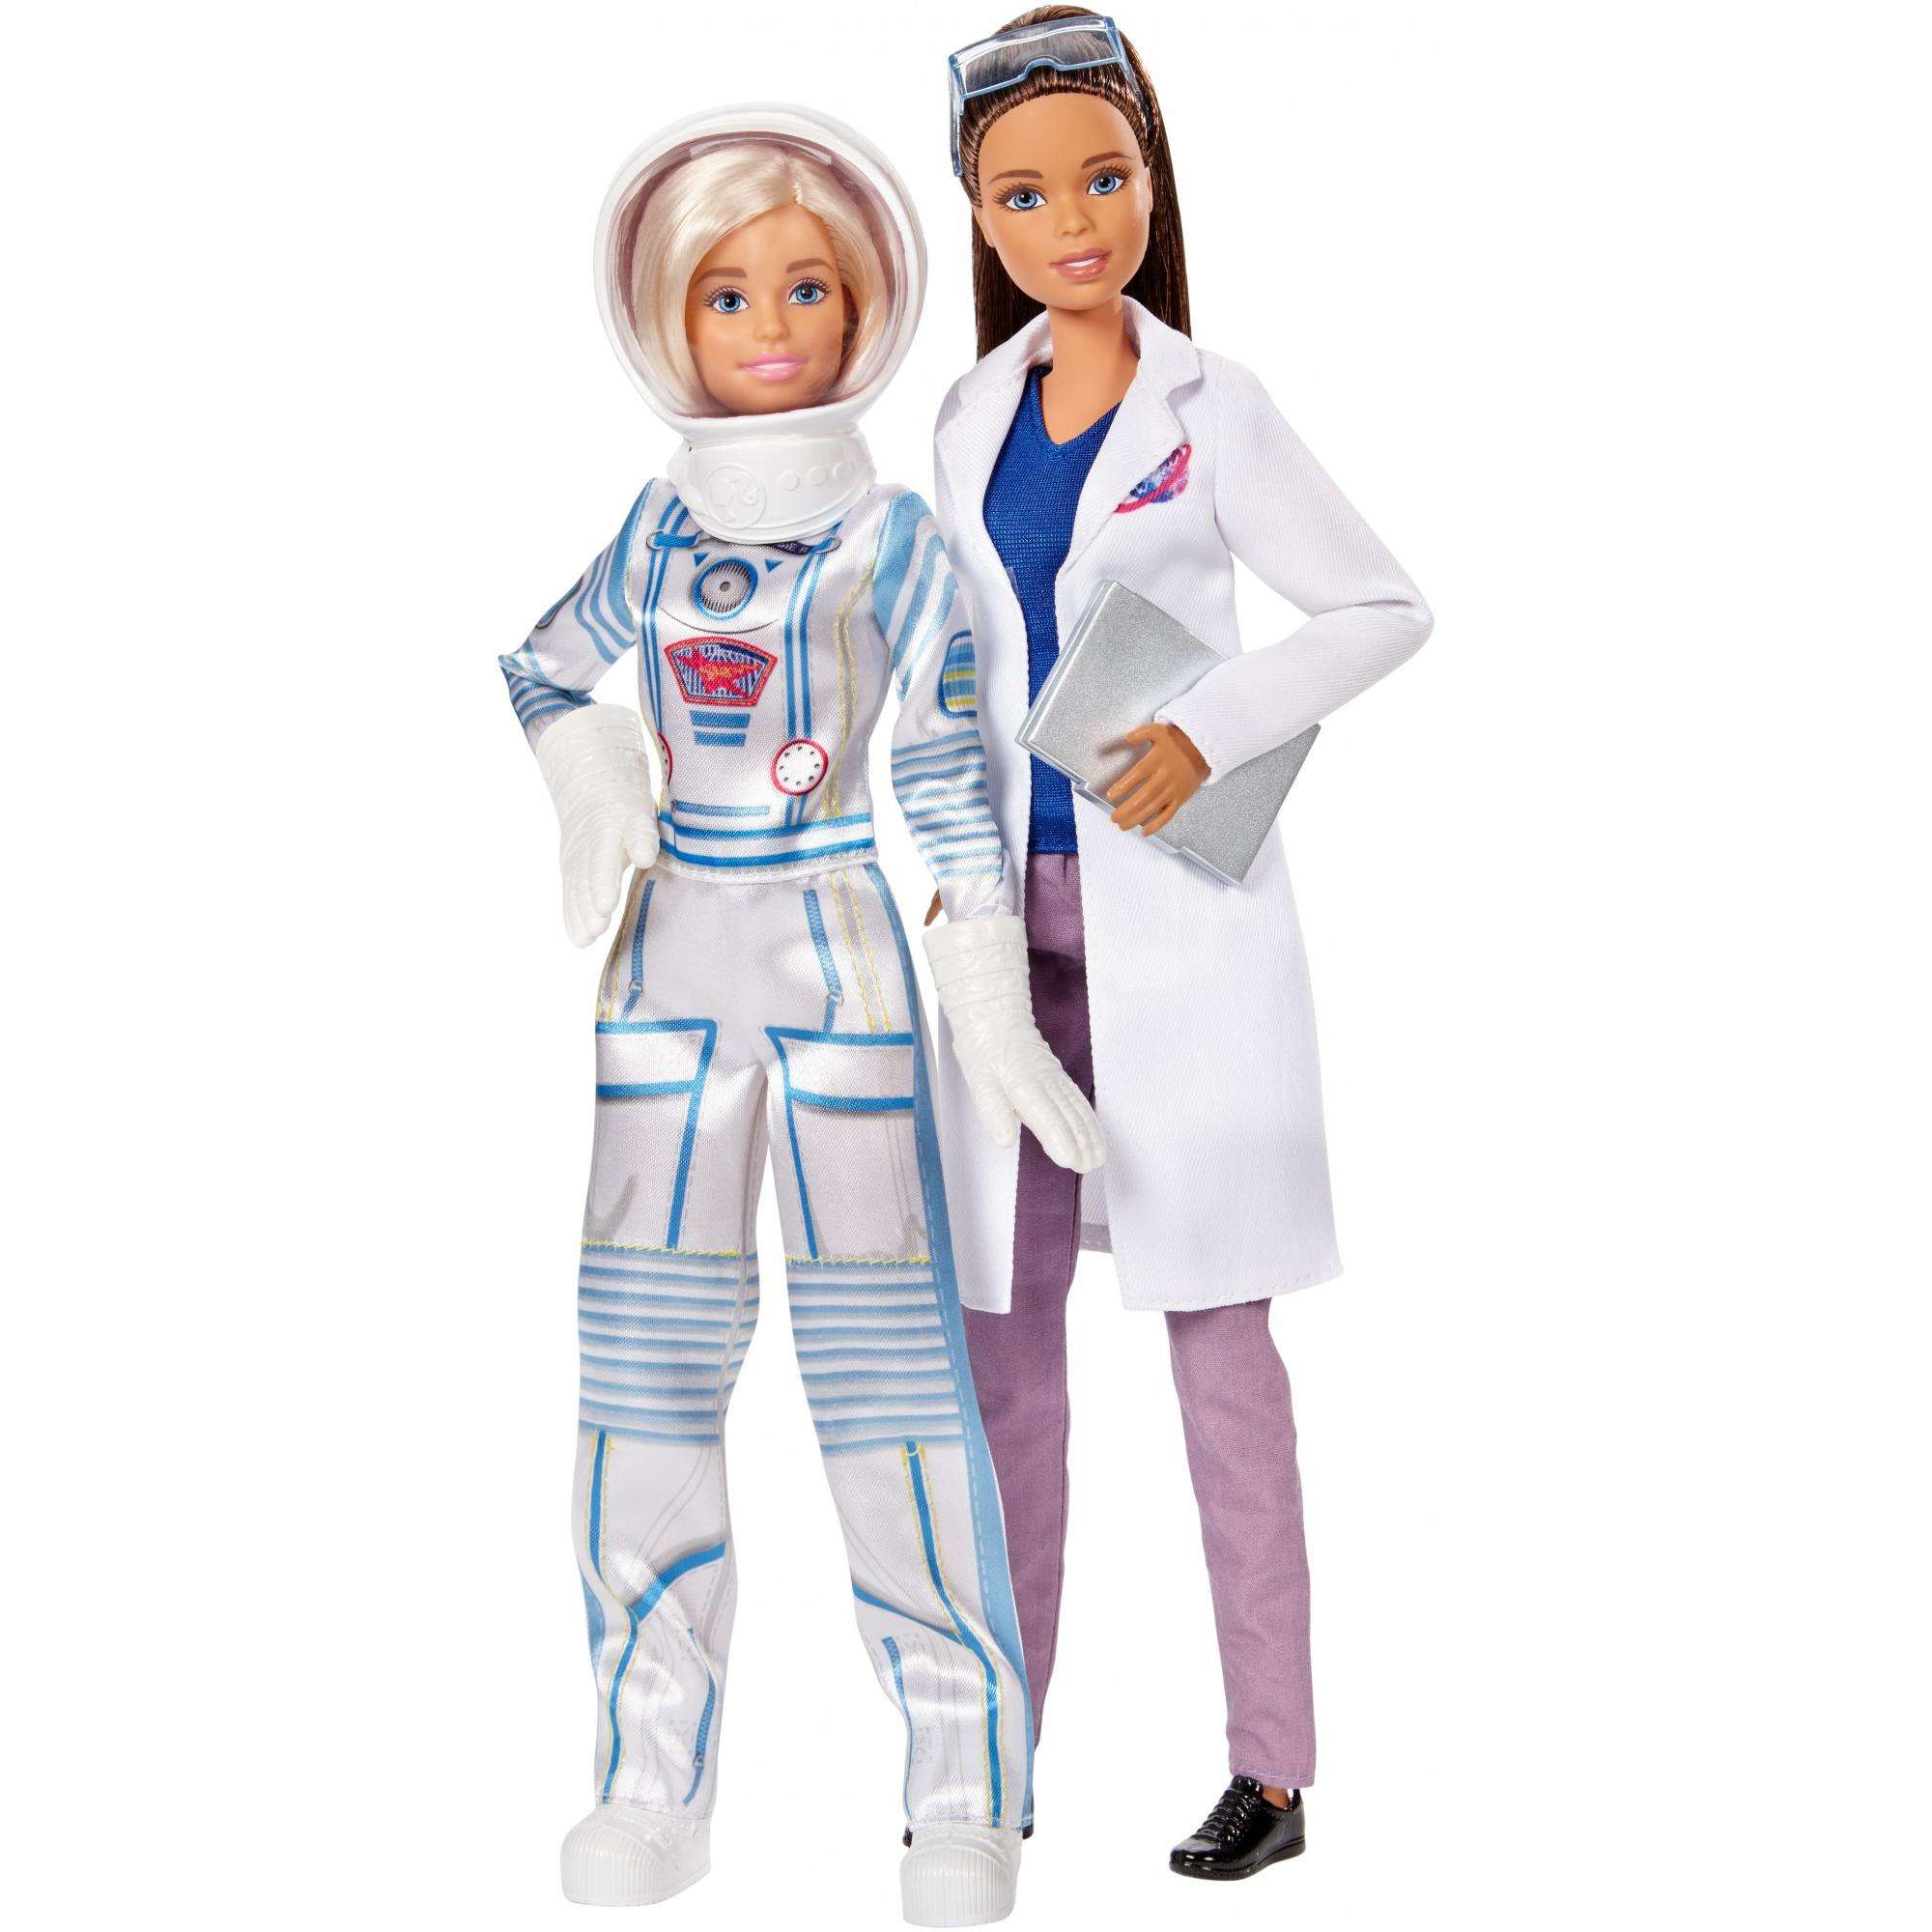 Lot of 2 Barbie Career Fashion Pack  Doctor White Coat Orange Gala Gown